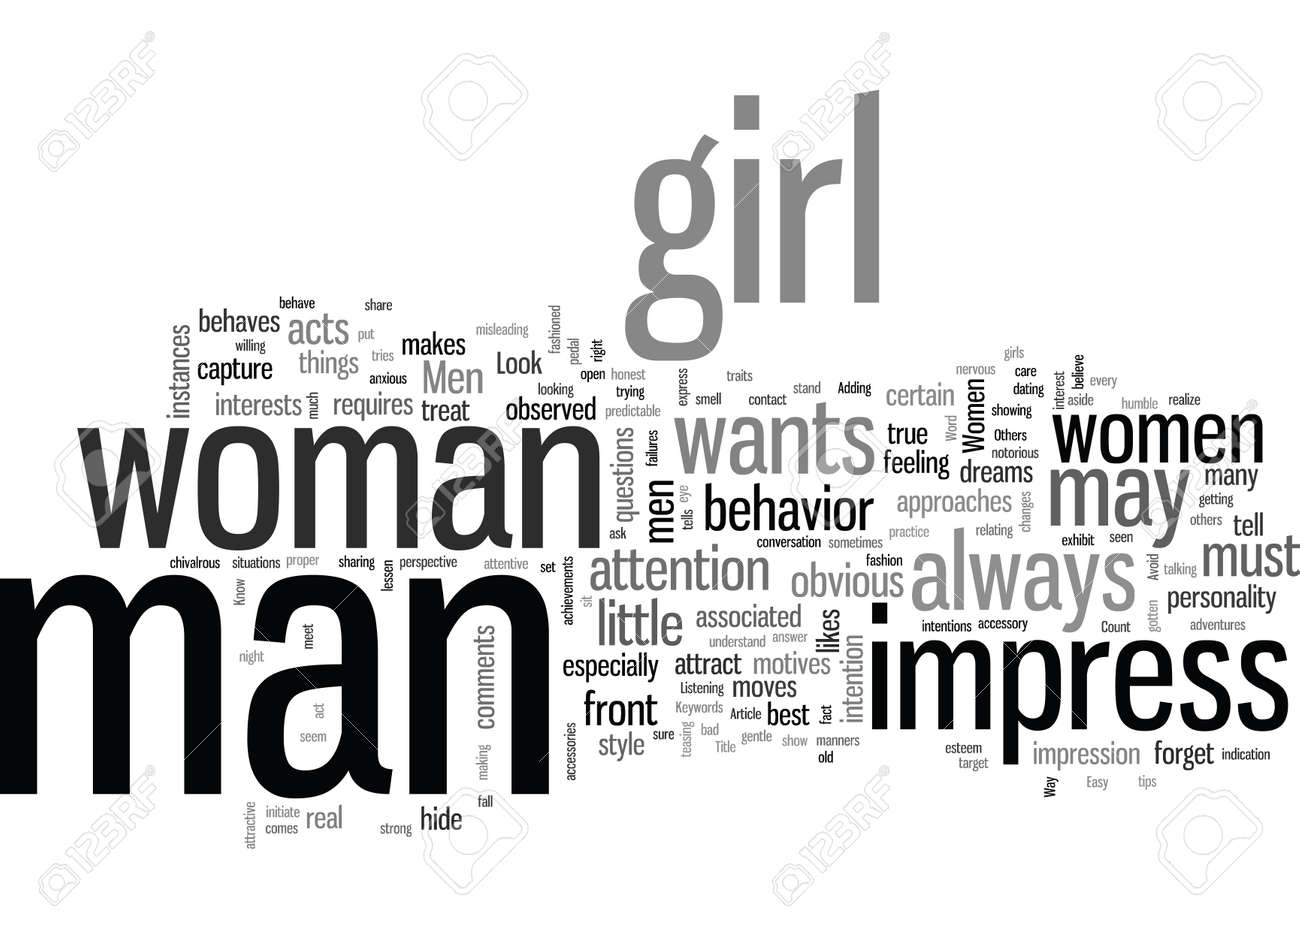 How To Impress Women The Easy Way - 132371207